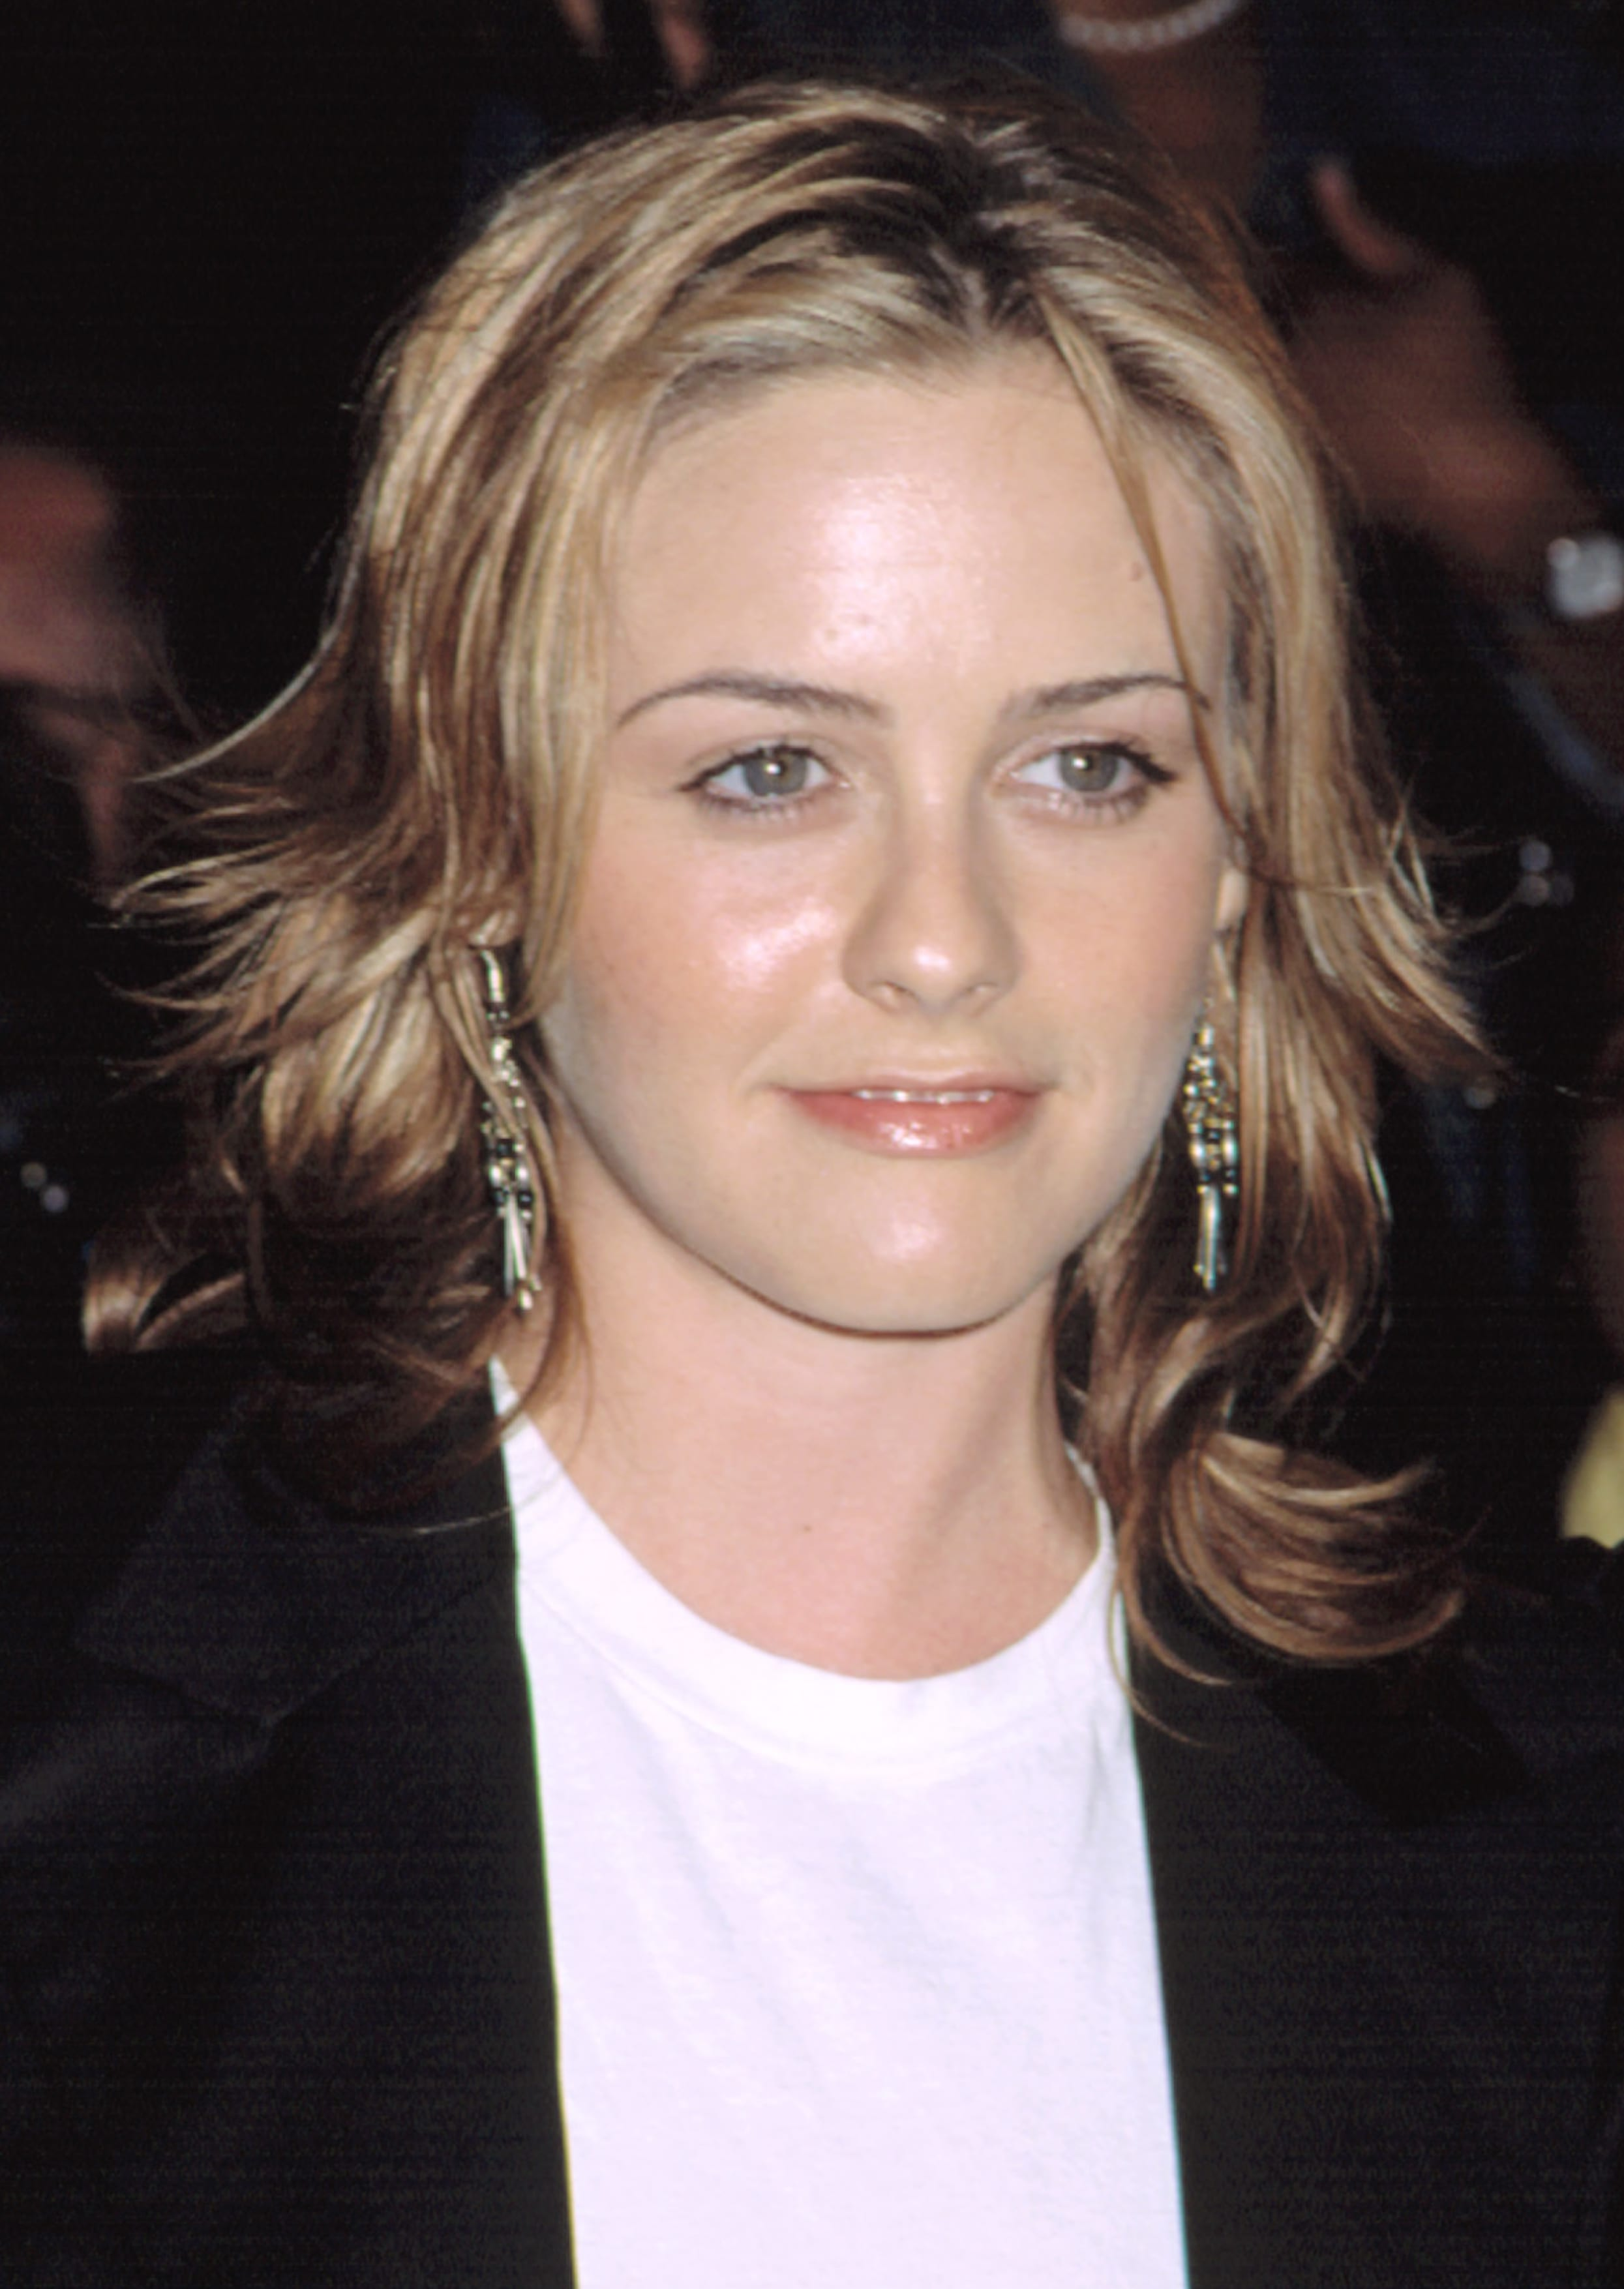 Alicia Silverstone And Her Rock'N'Rolling Mood